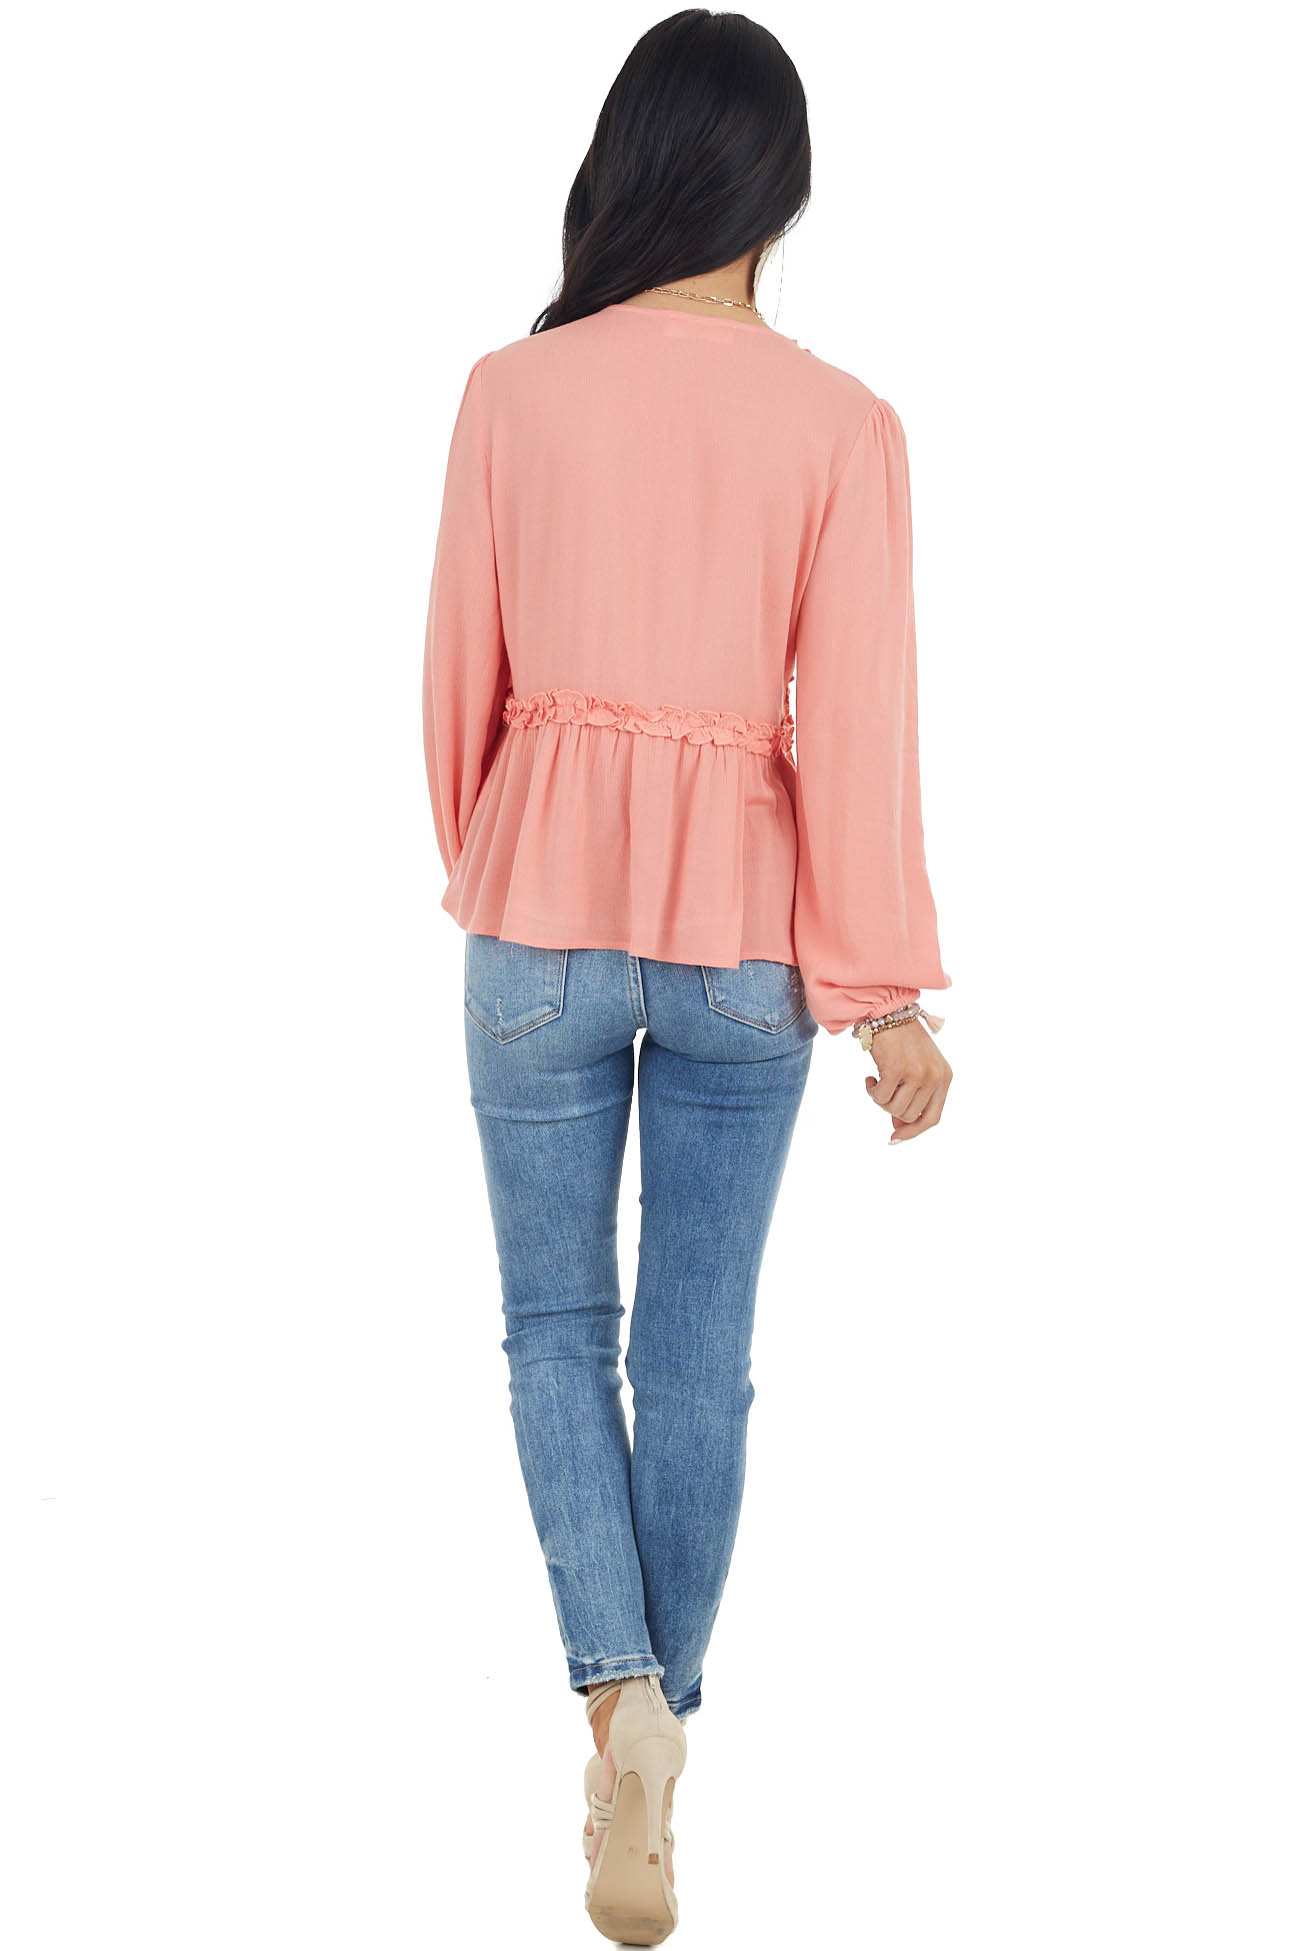 Coral Long Puff Sleeve Babydoll Top with Ruffle Detail